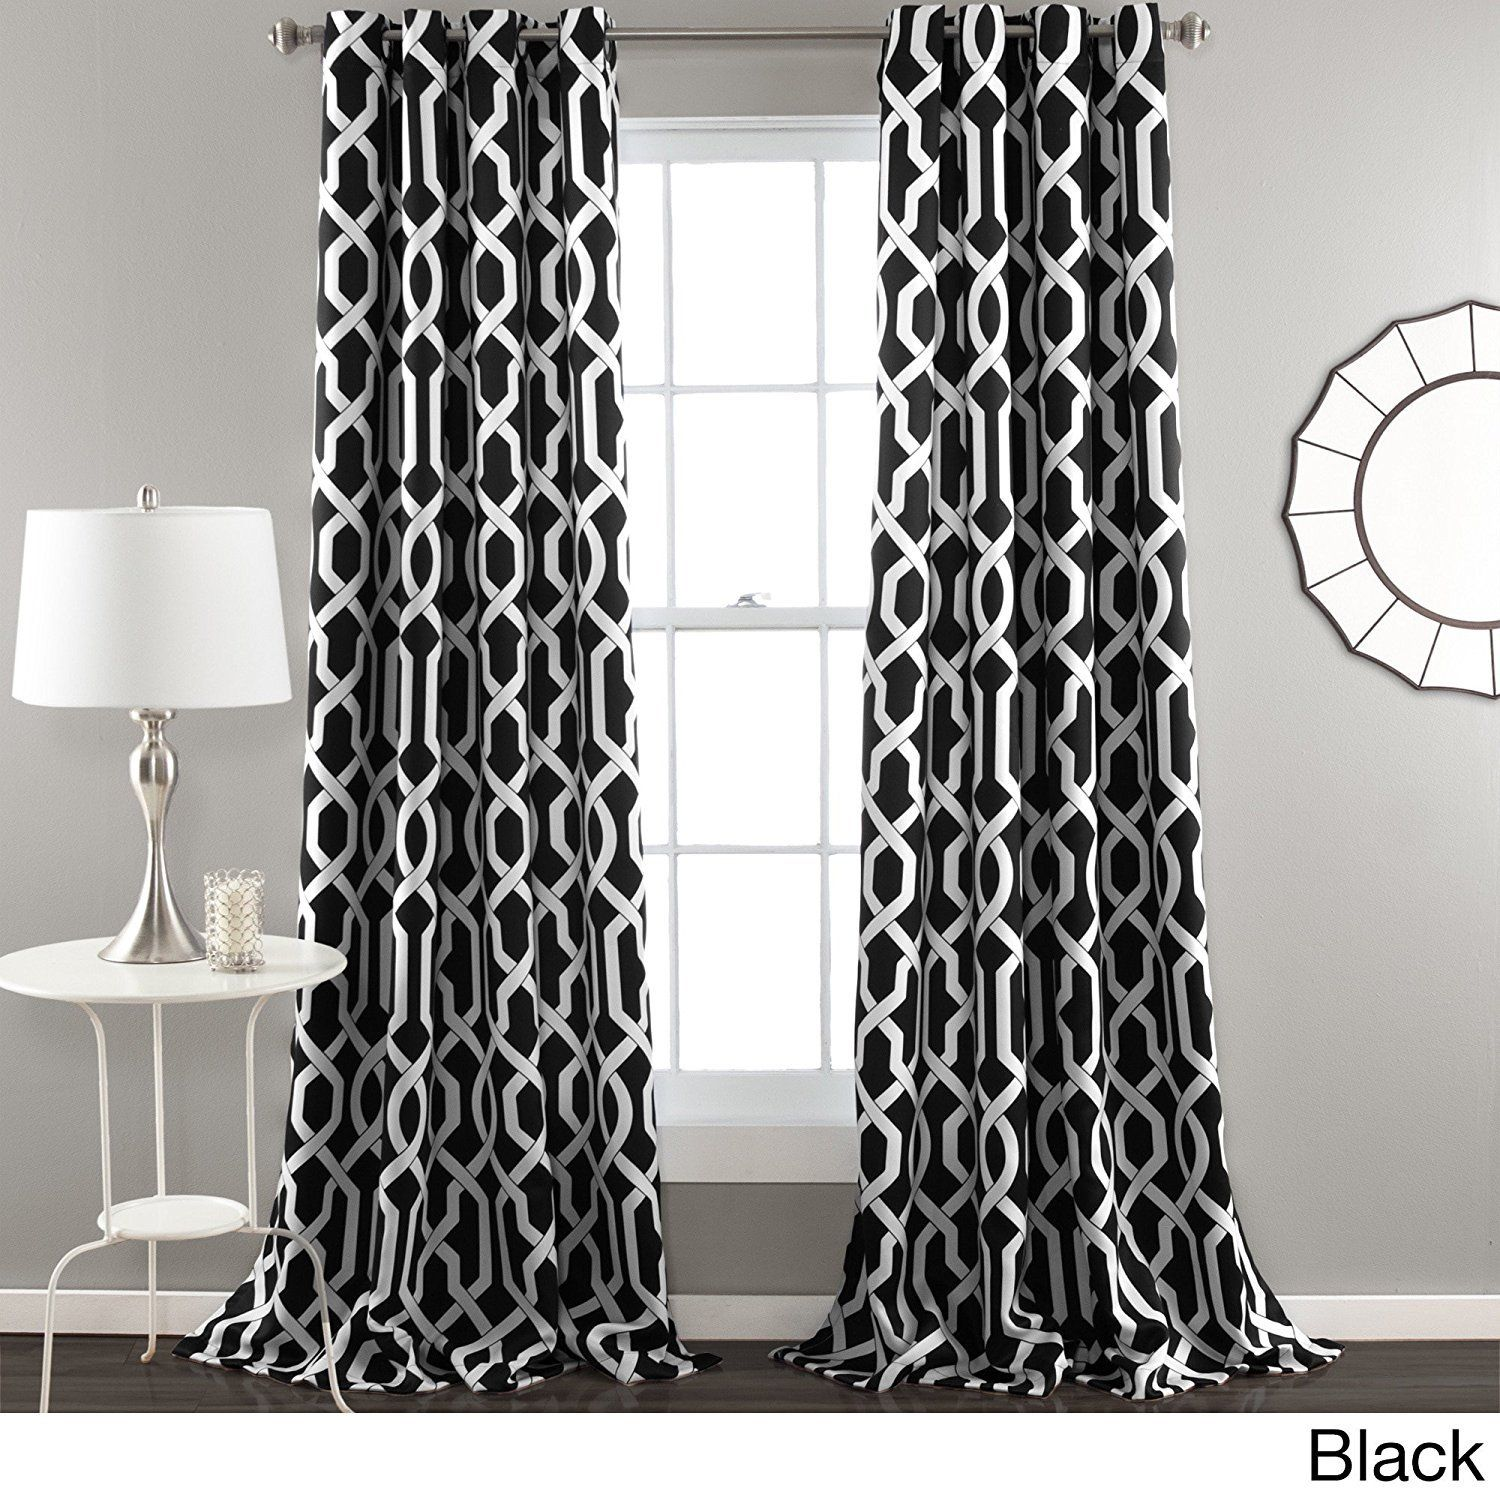 84 Inch Bold Black White Moroccan Curtains Panel Pair Set Black